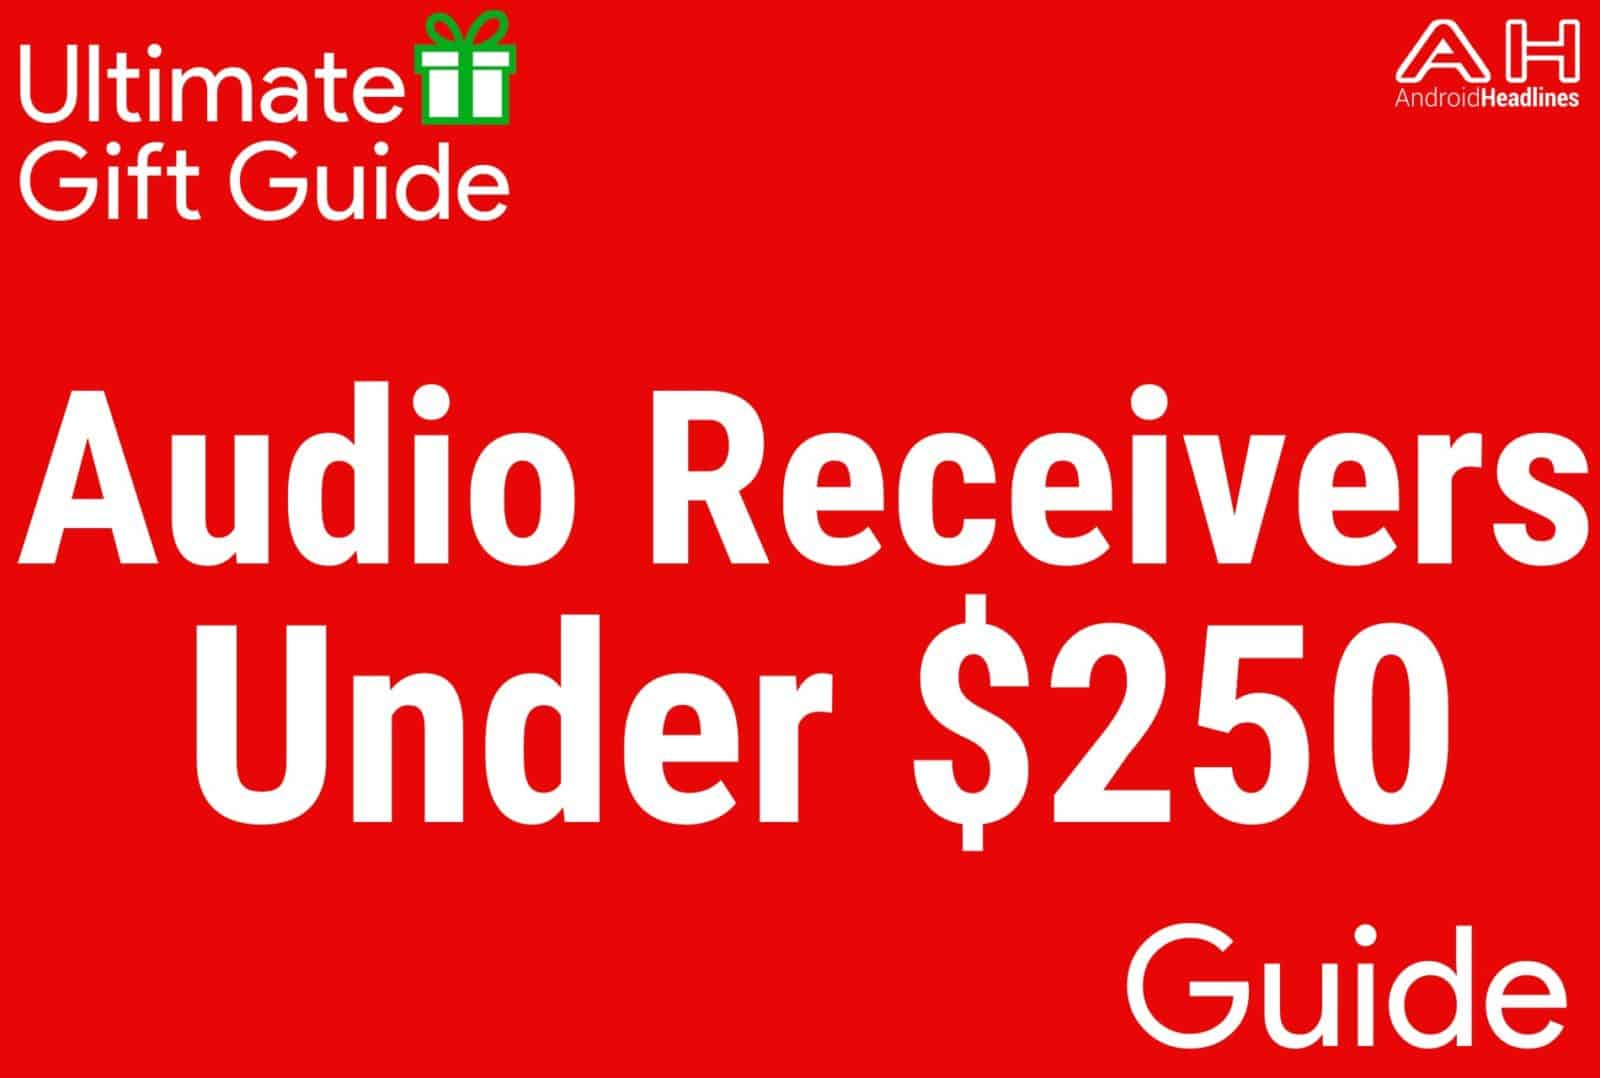 Audio Receivers Under $250 - Gift Guide 2015